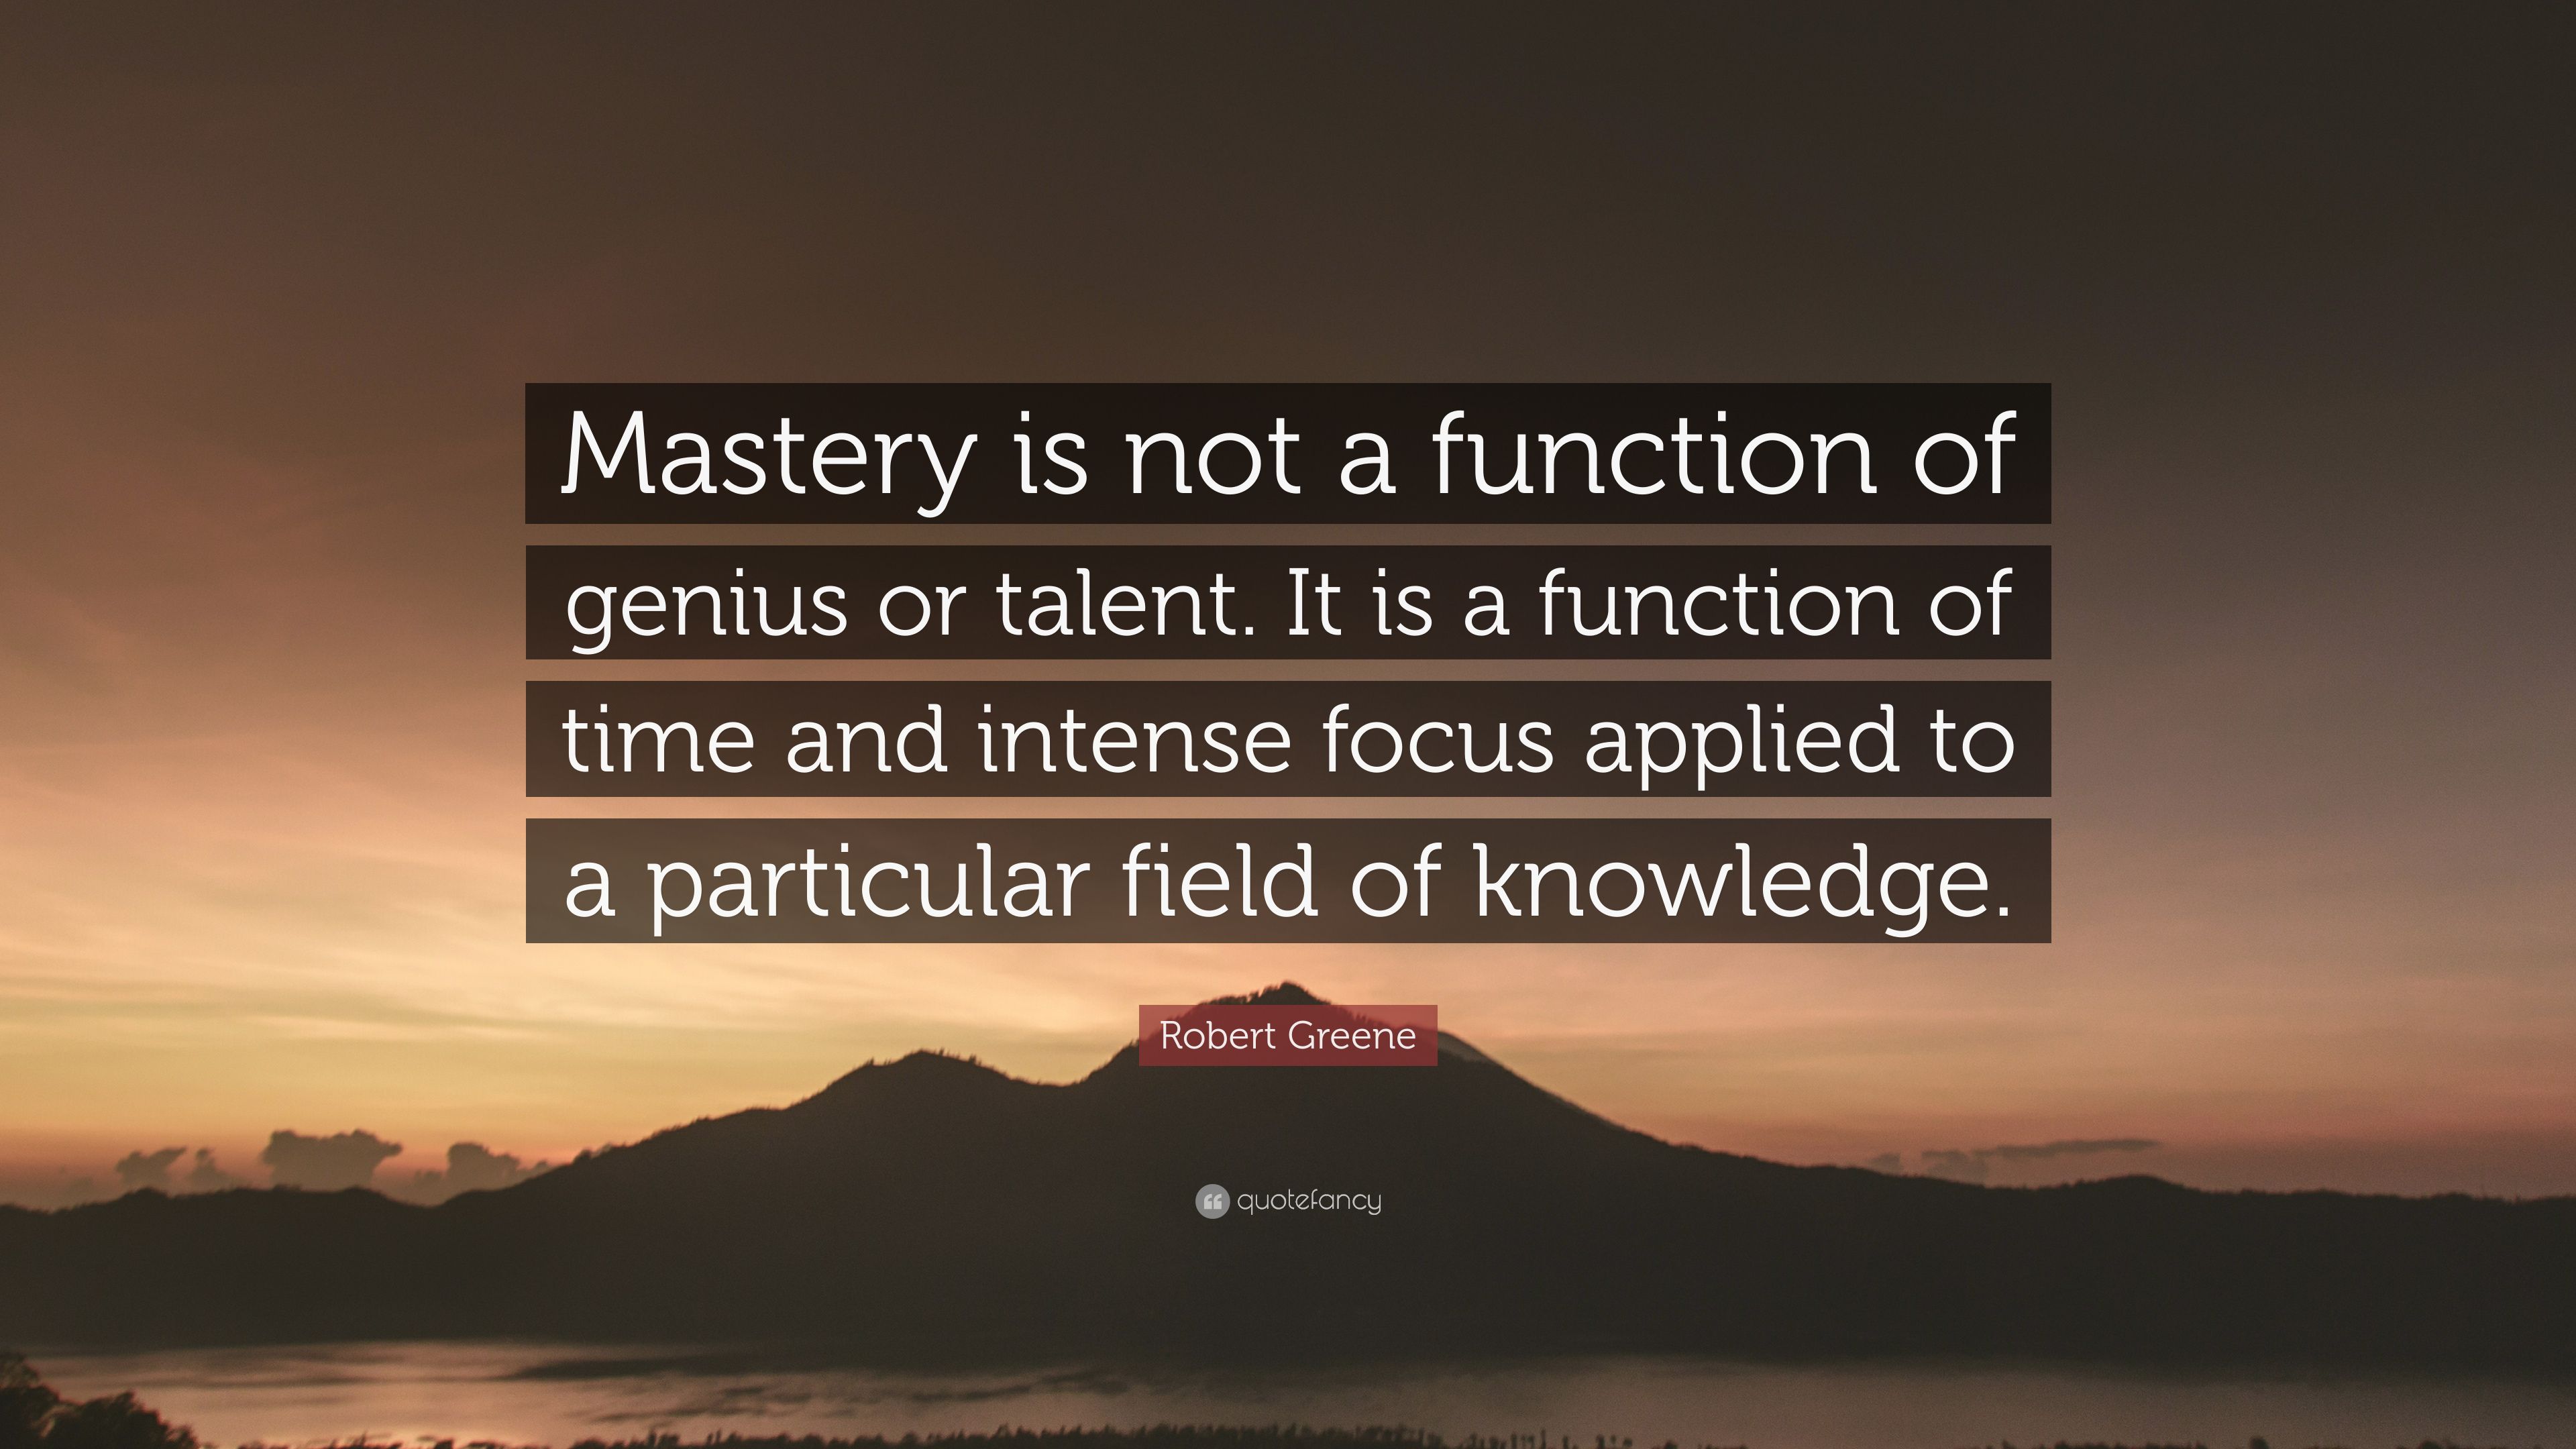 [Image] What is mastery?